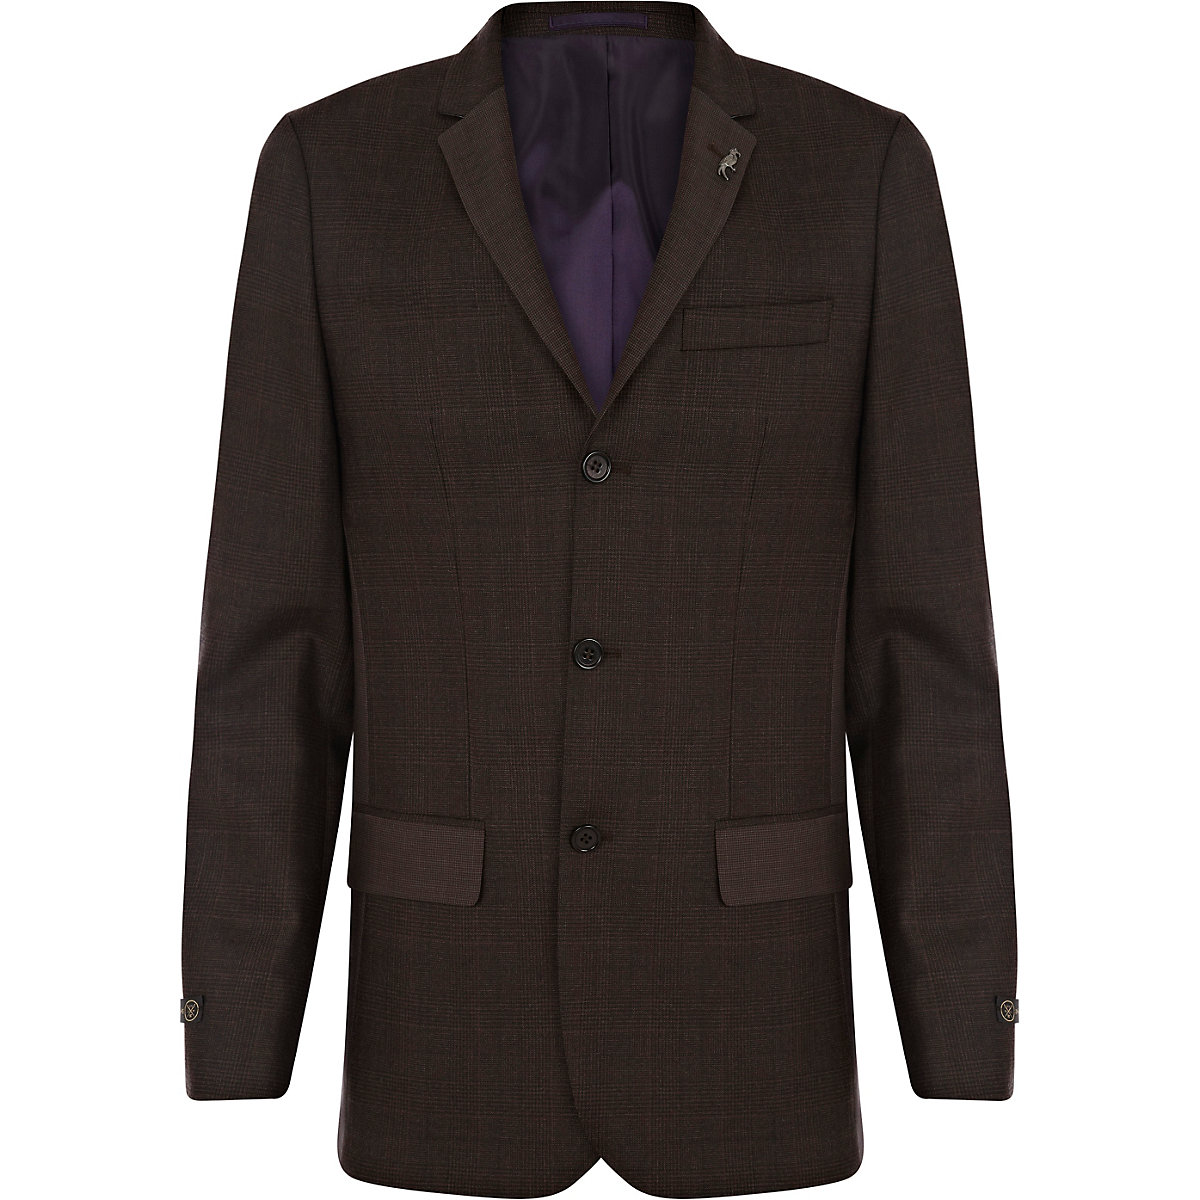 Dark brown check skinny suit jacket